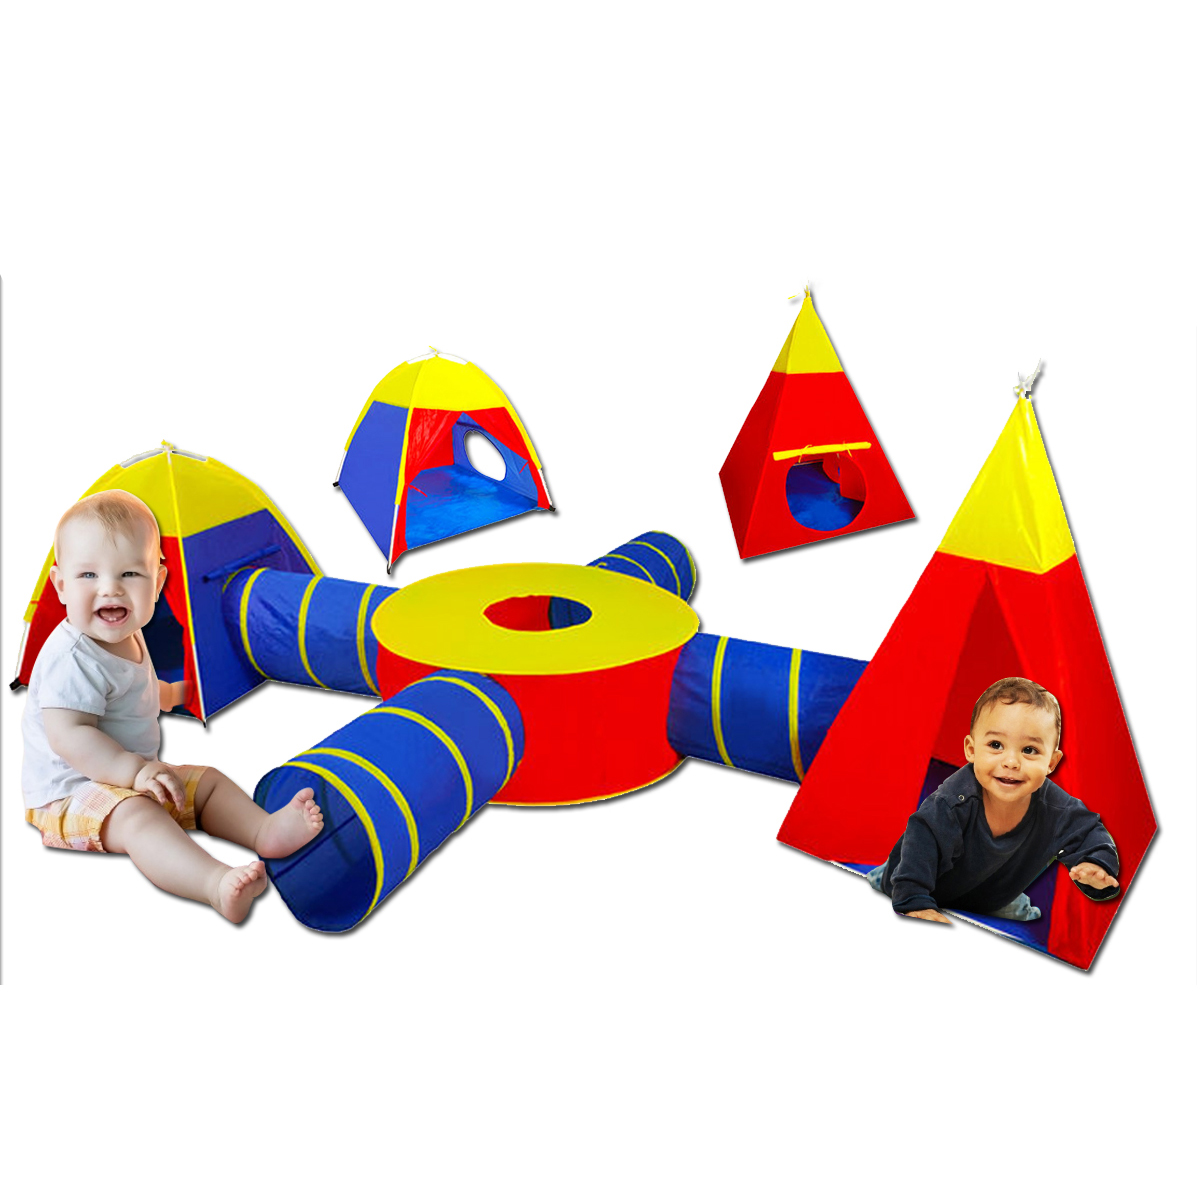 7Pcs/Set Large Play Tent Kids Toddlers Teepee Tunnel Children Baby Cubby Playhouse For Age 4-6 Years Old